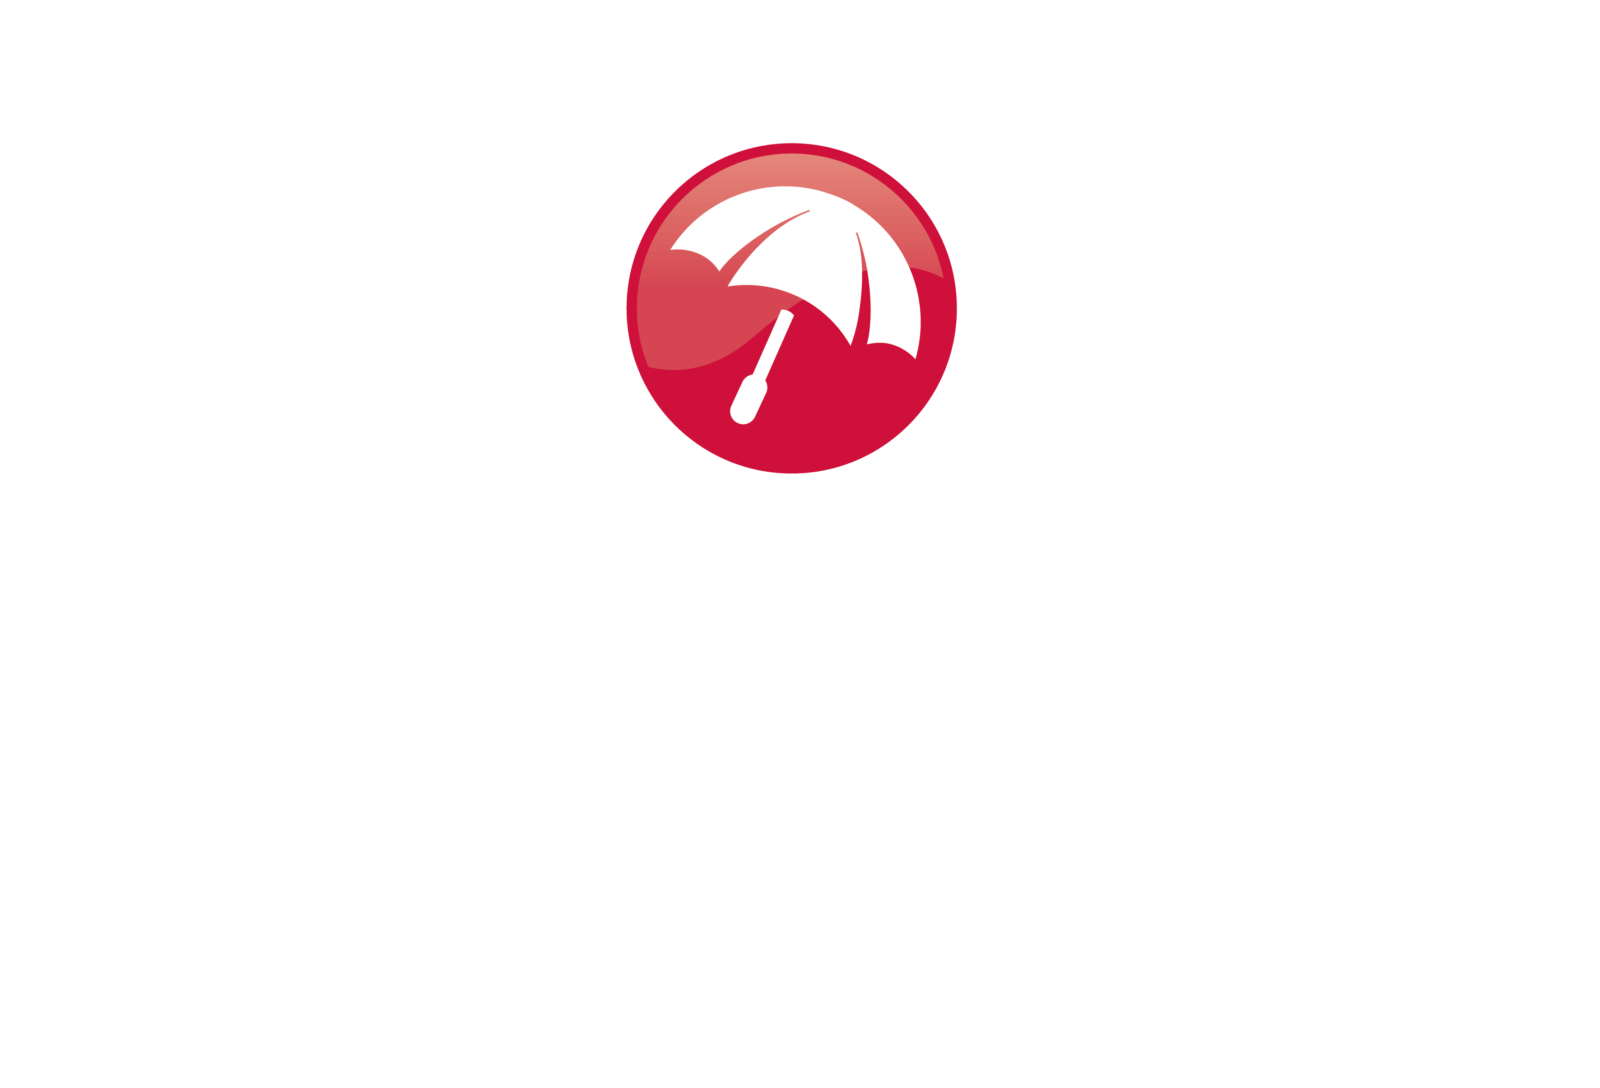 Topseal Direct Lay - Topseal